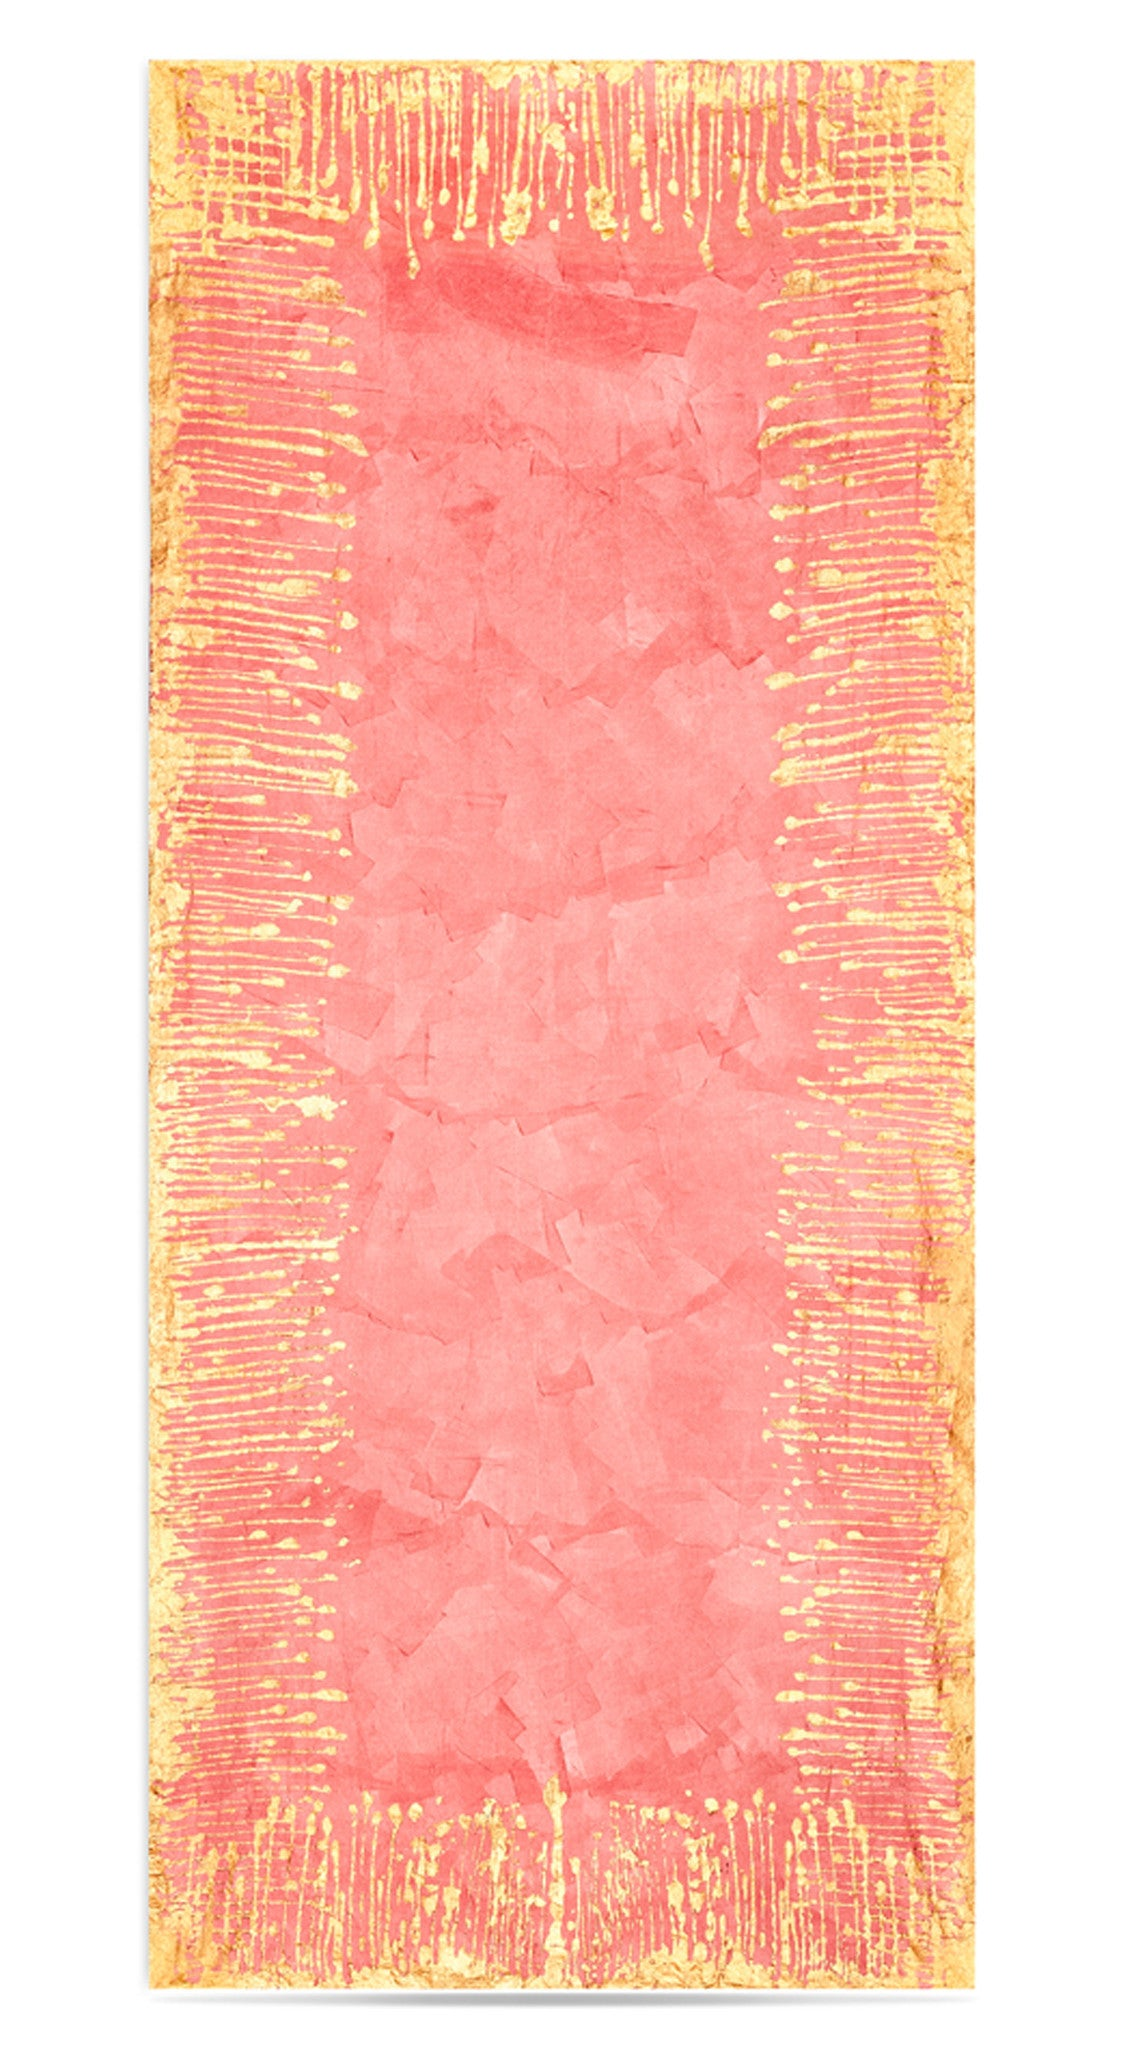 Ink Linen Tablecloth in Deep Pink with Gold Drips